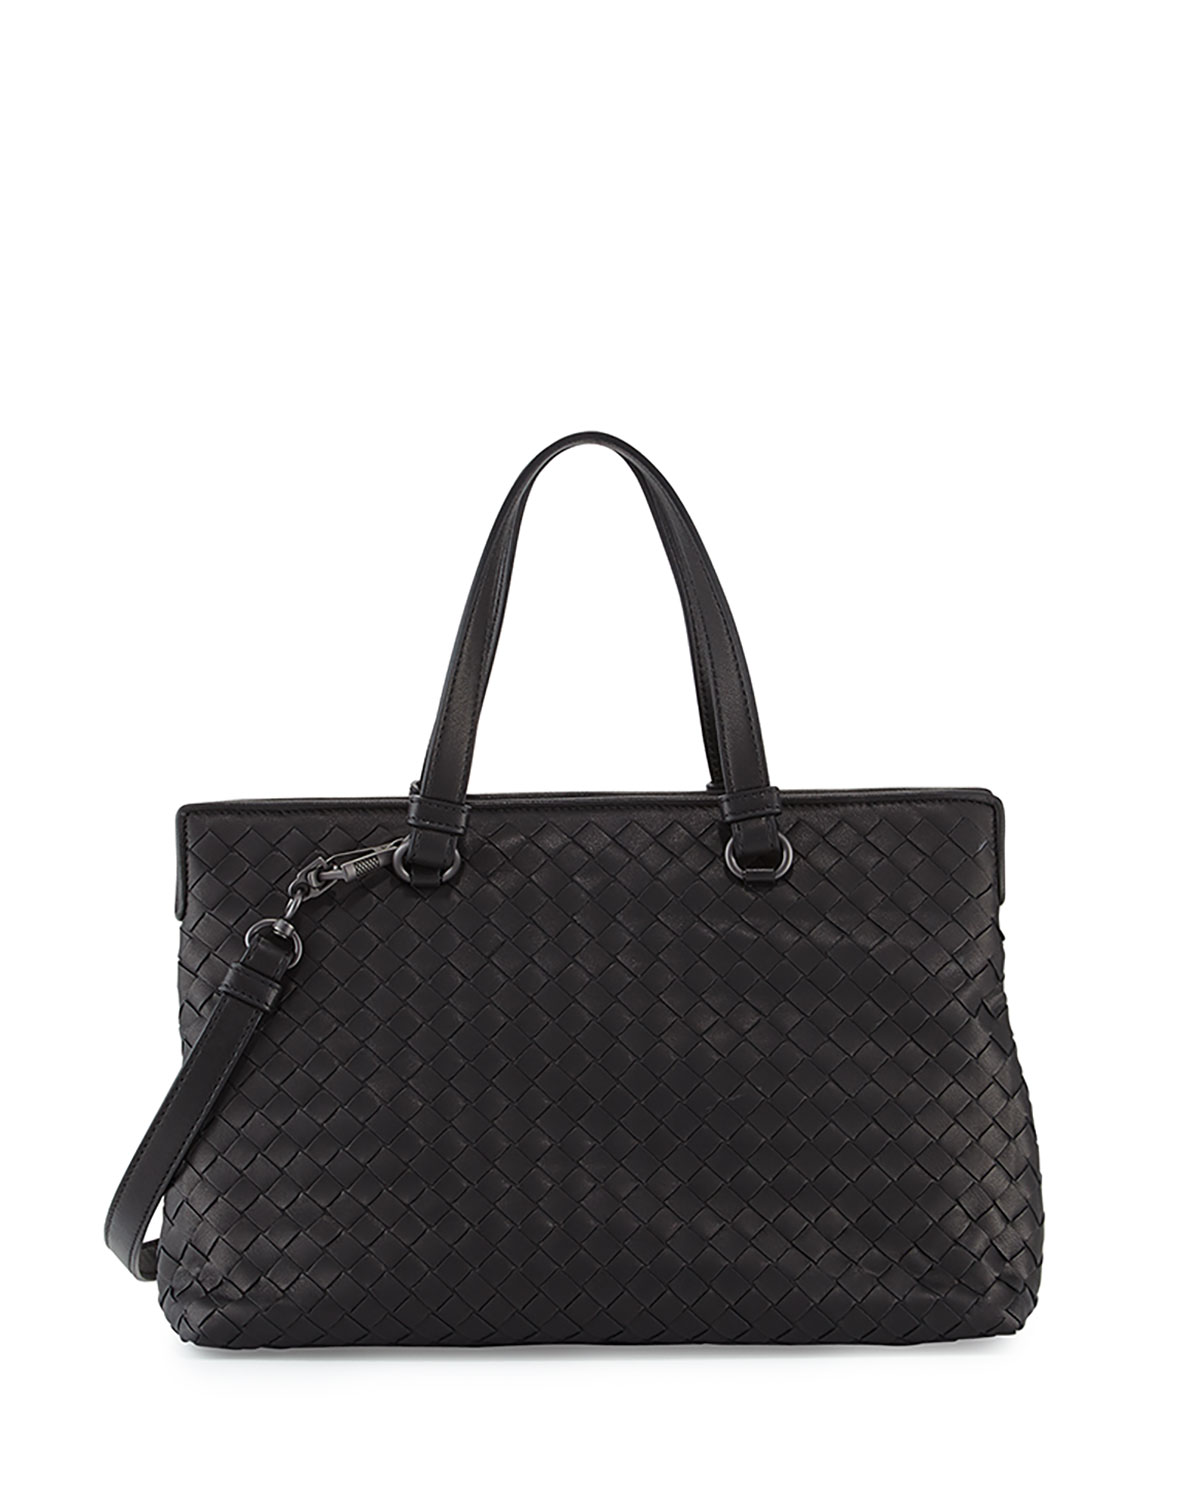 Bottega Veneta Medium Intrecciato Nappa Top Handle Bag  afbab66a038e4